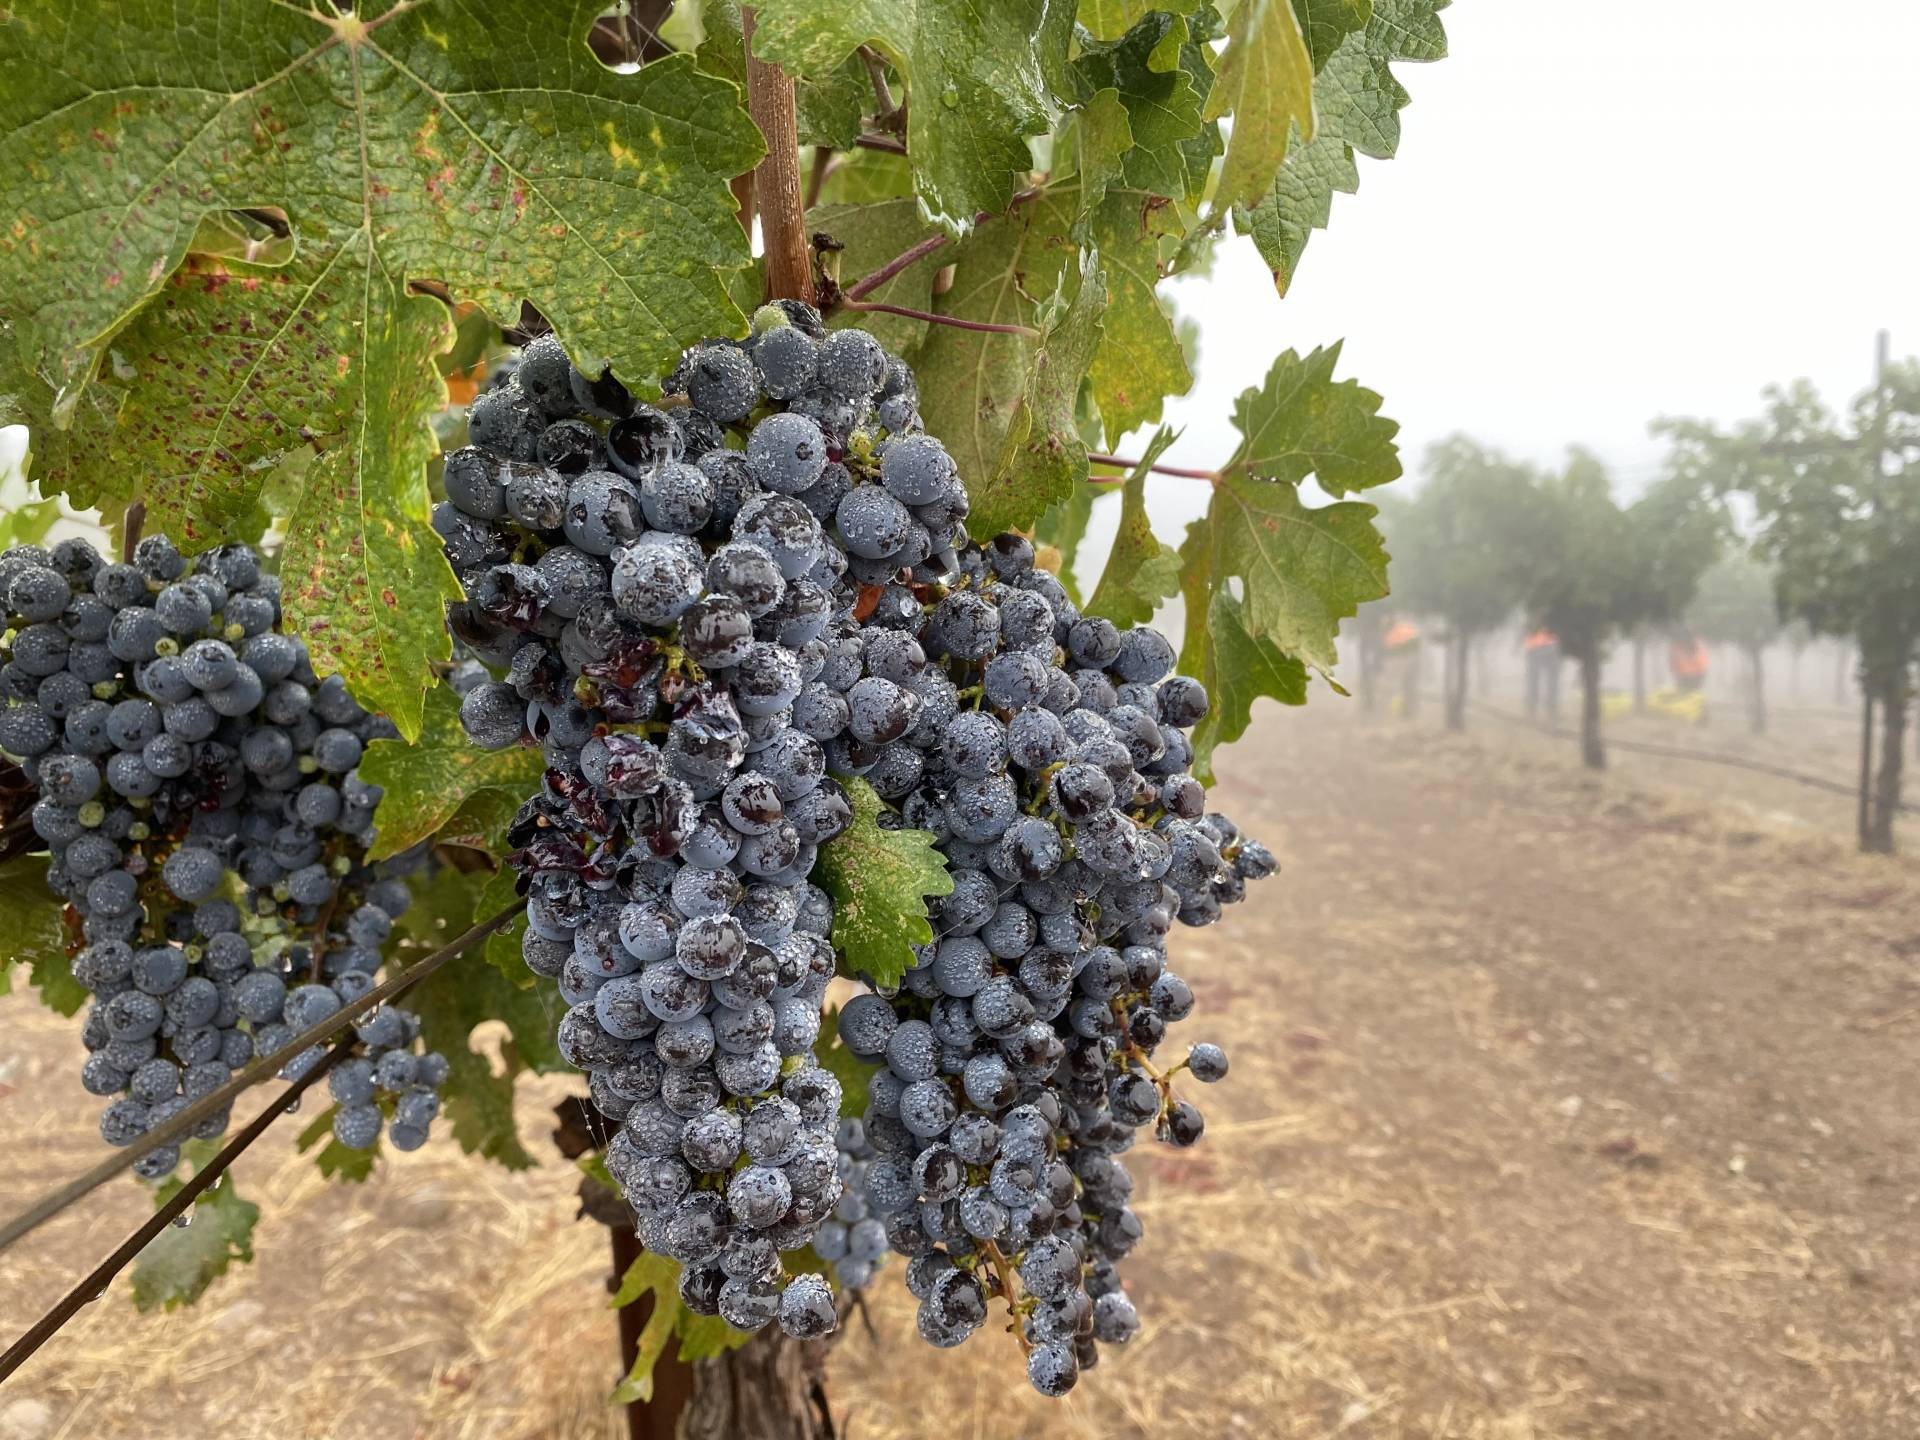 A grapevine in Sonoma County. The grapes are grown without any irrigation water.